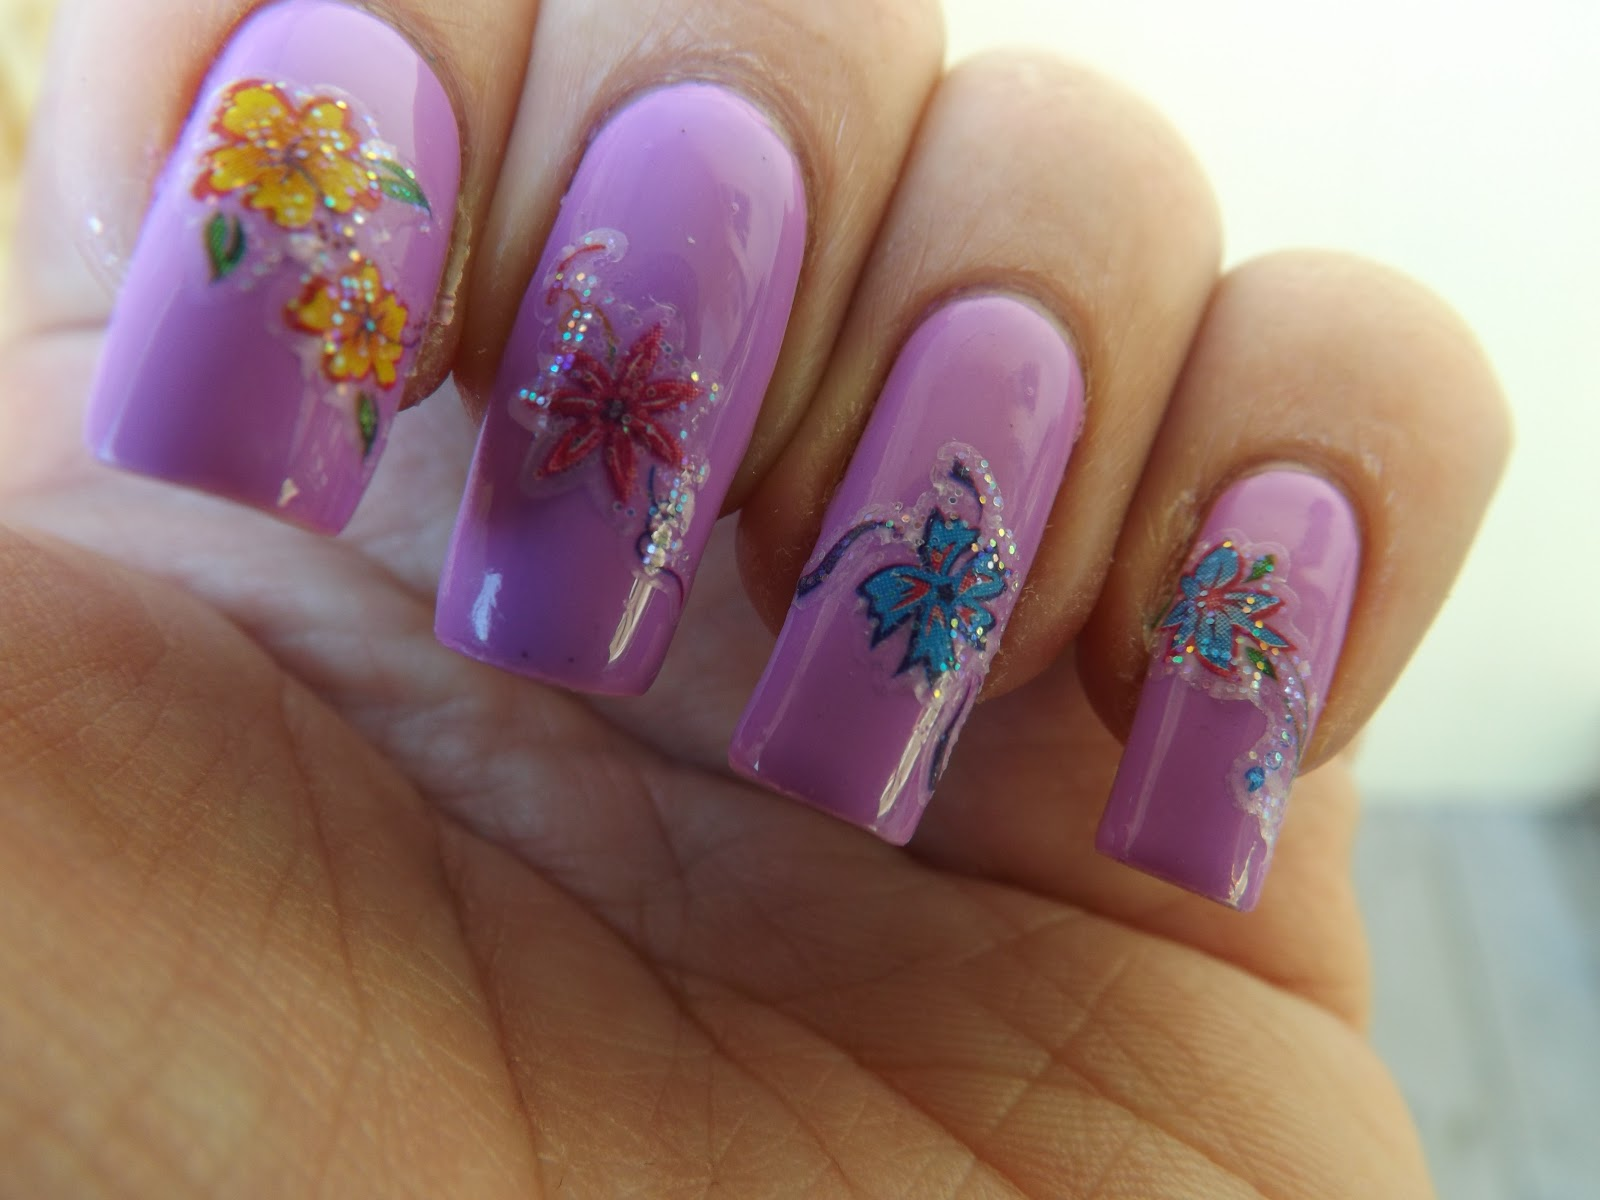 Joby Nail Art Decals: Ashley is polishaddicted joby nail art ...